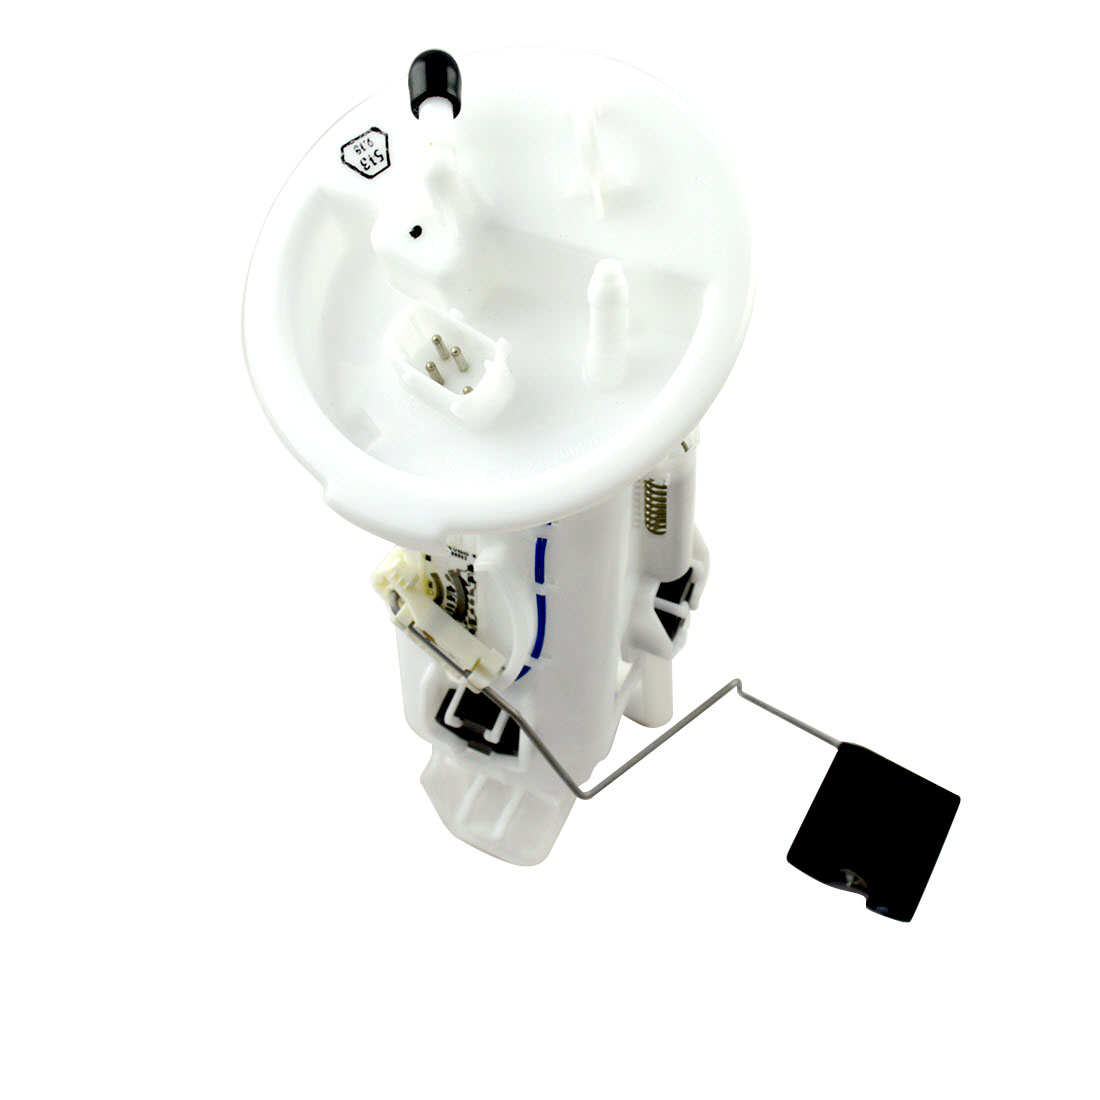 Fuel Pumps.Limited pumps online. Please phone 051424799.